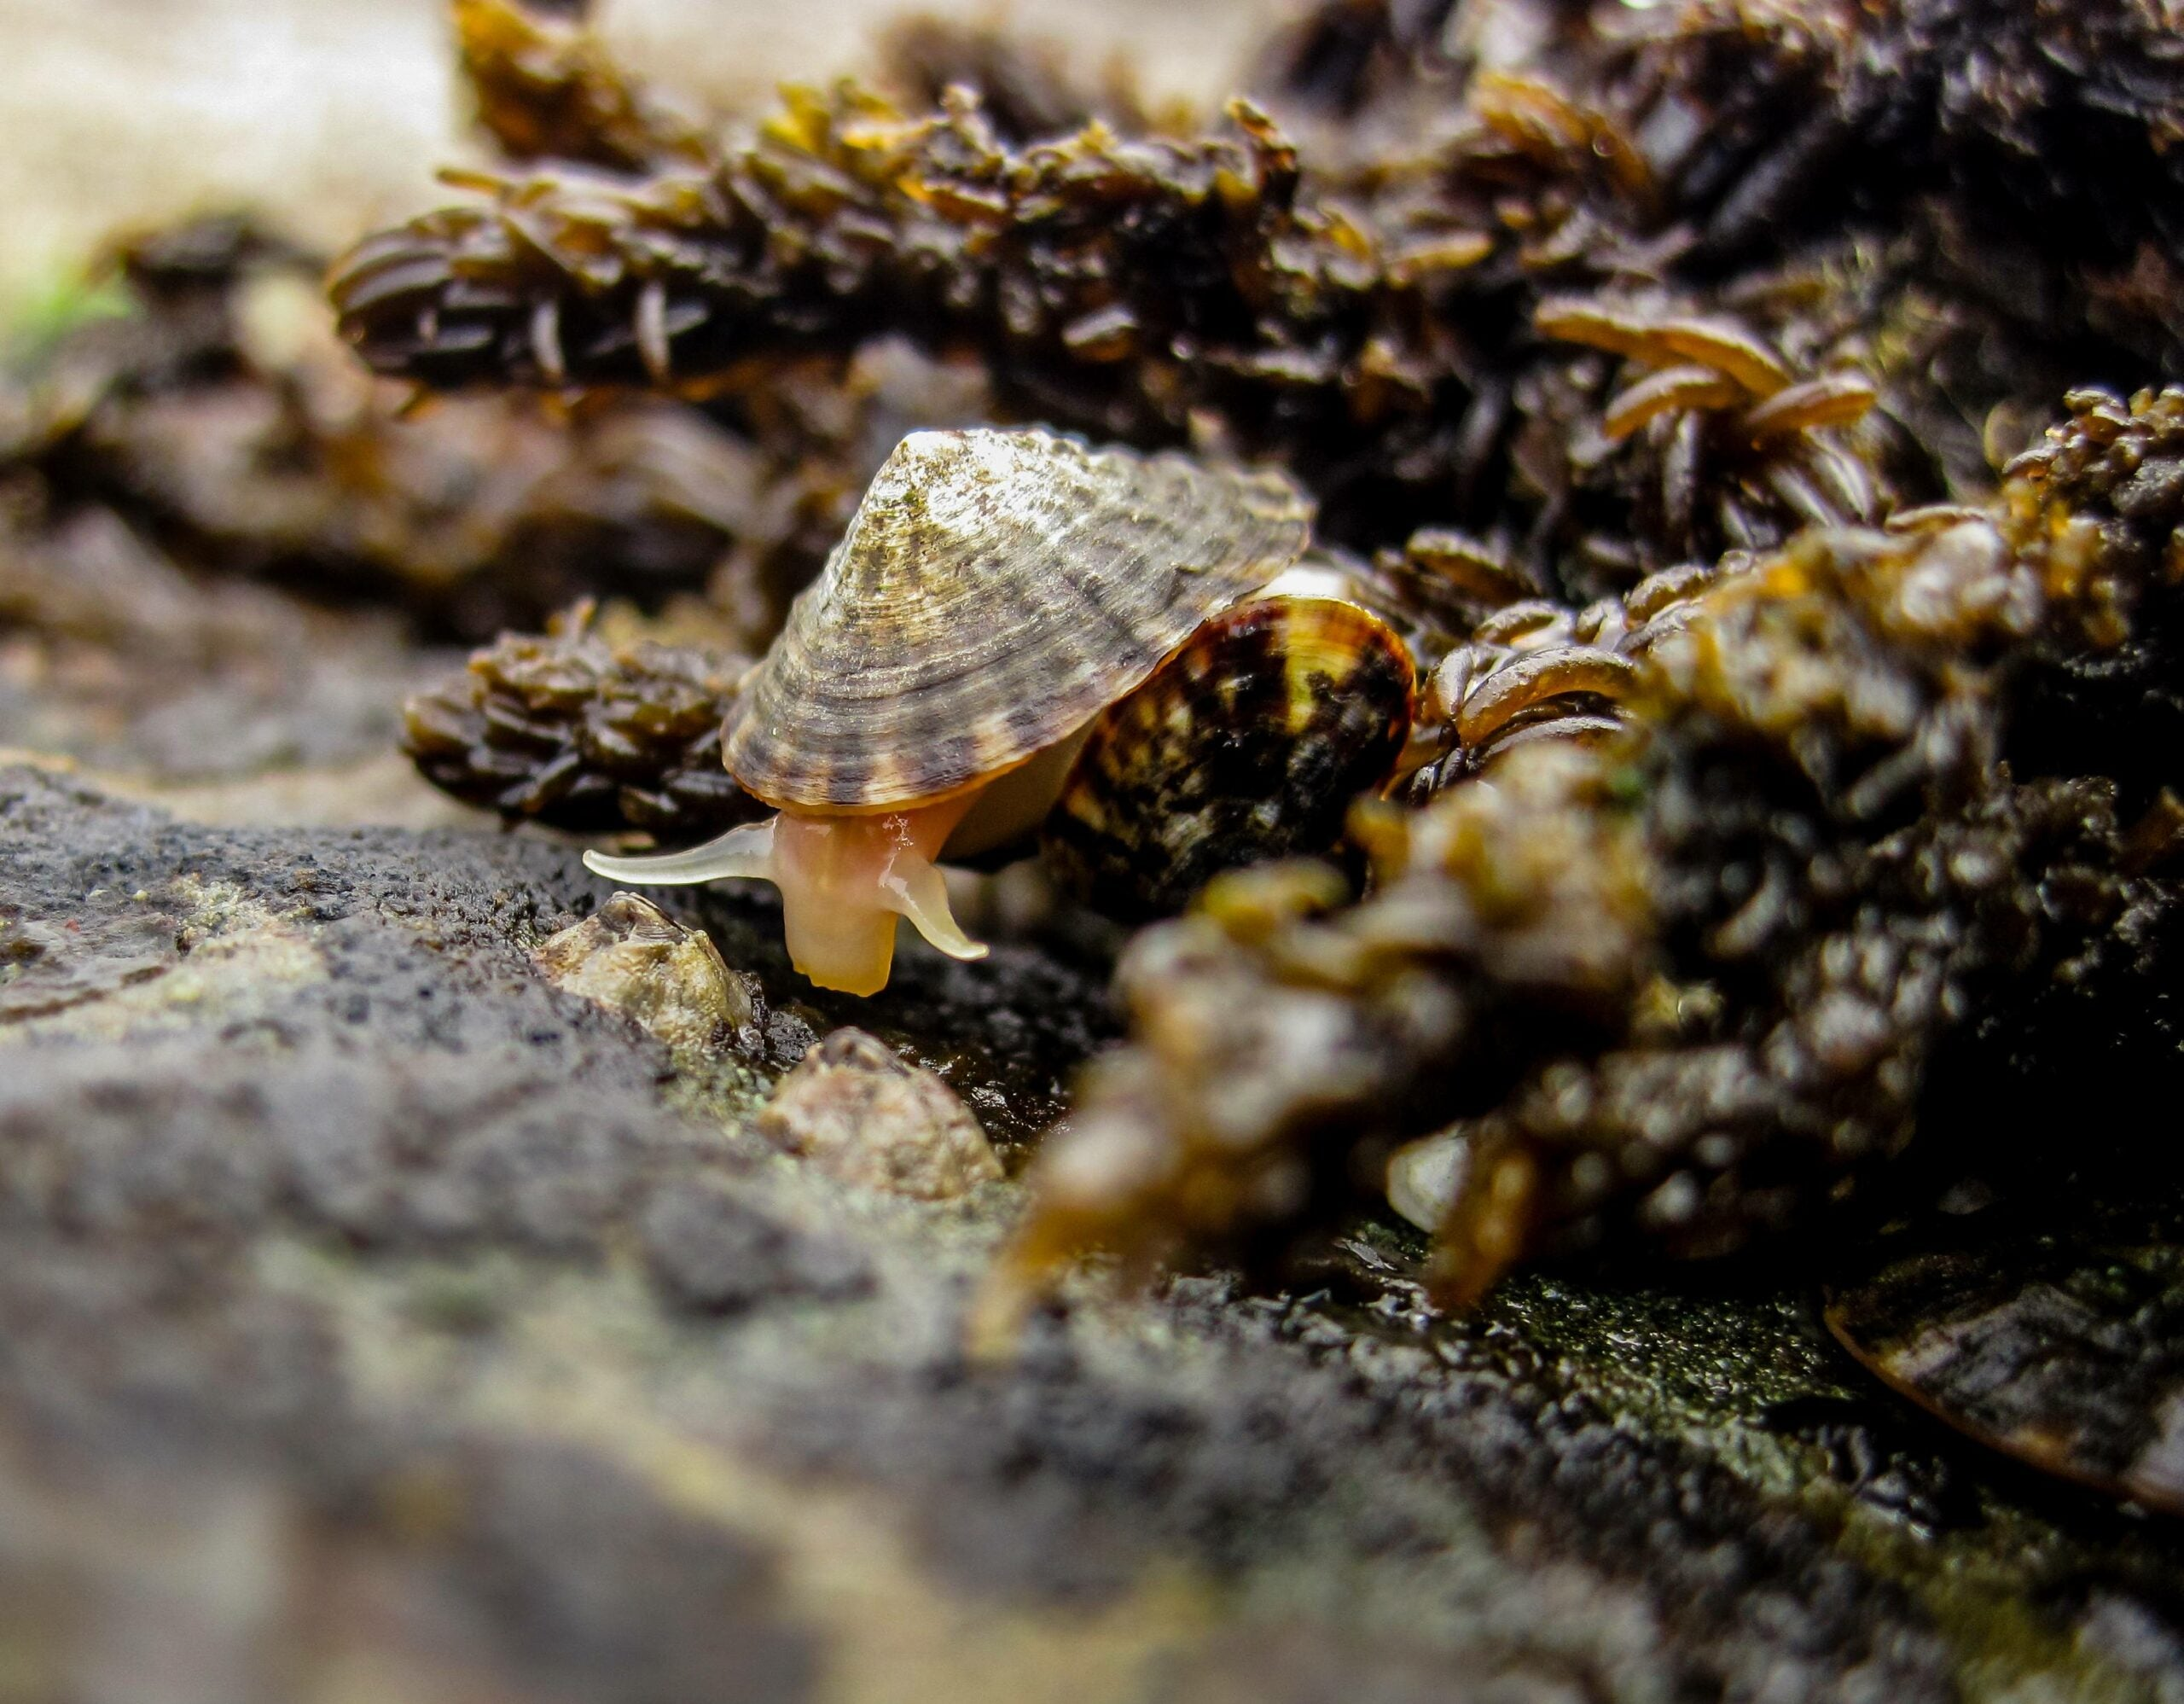 Very hungry snails are guarding coastal ecosystems against climate change